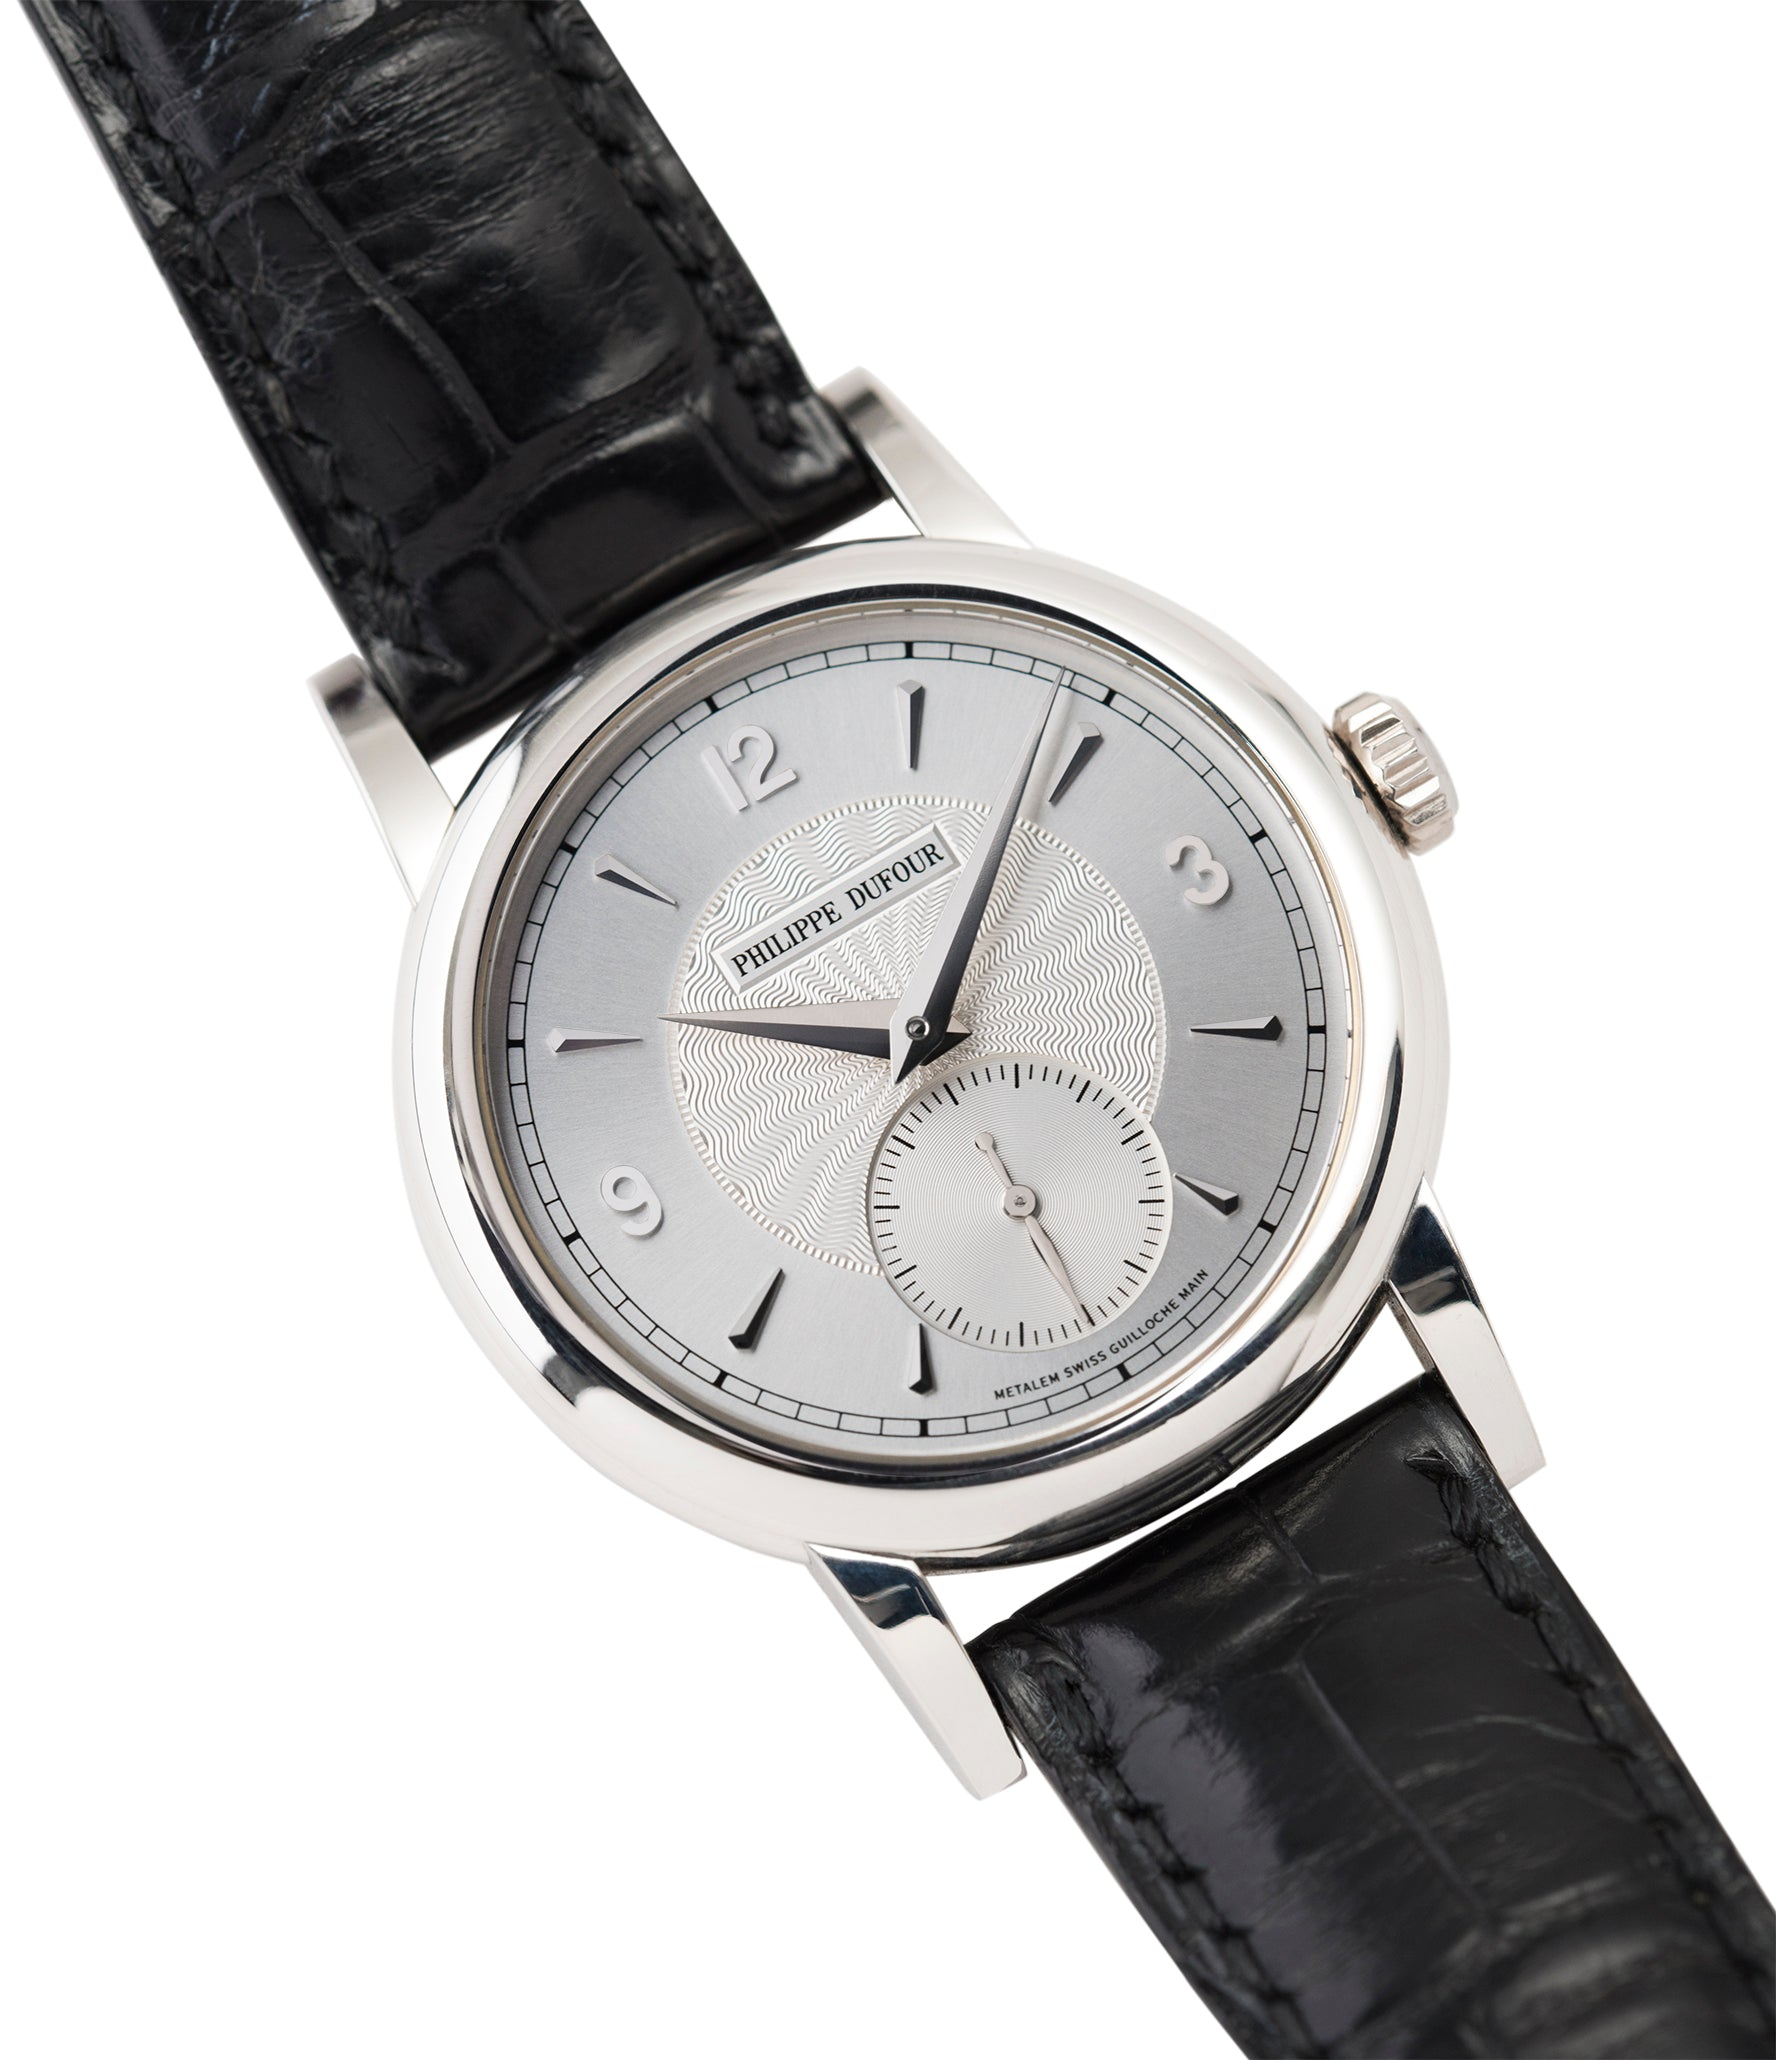 buying Philippe Dufour Simplicity platinum time-only dress watch for sale online at A Collected Man London UK approved specialist of preowned independent watchmakers